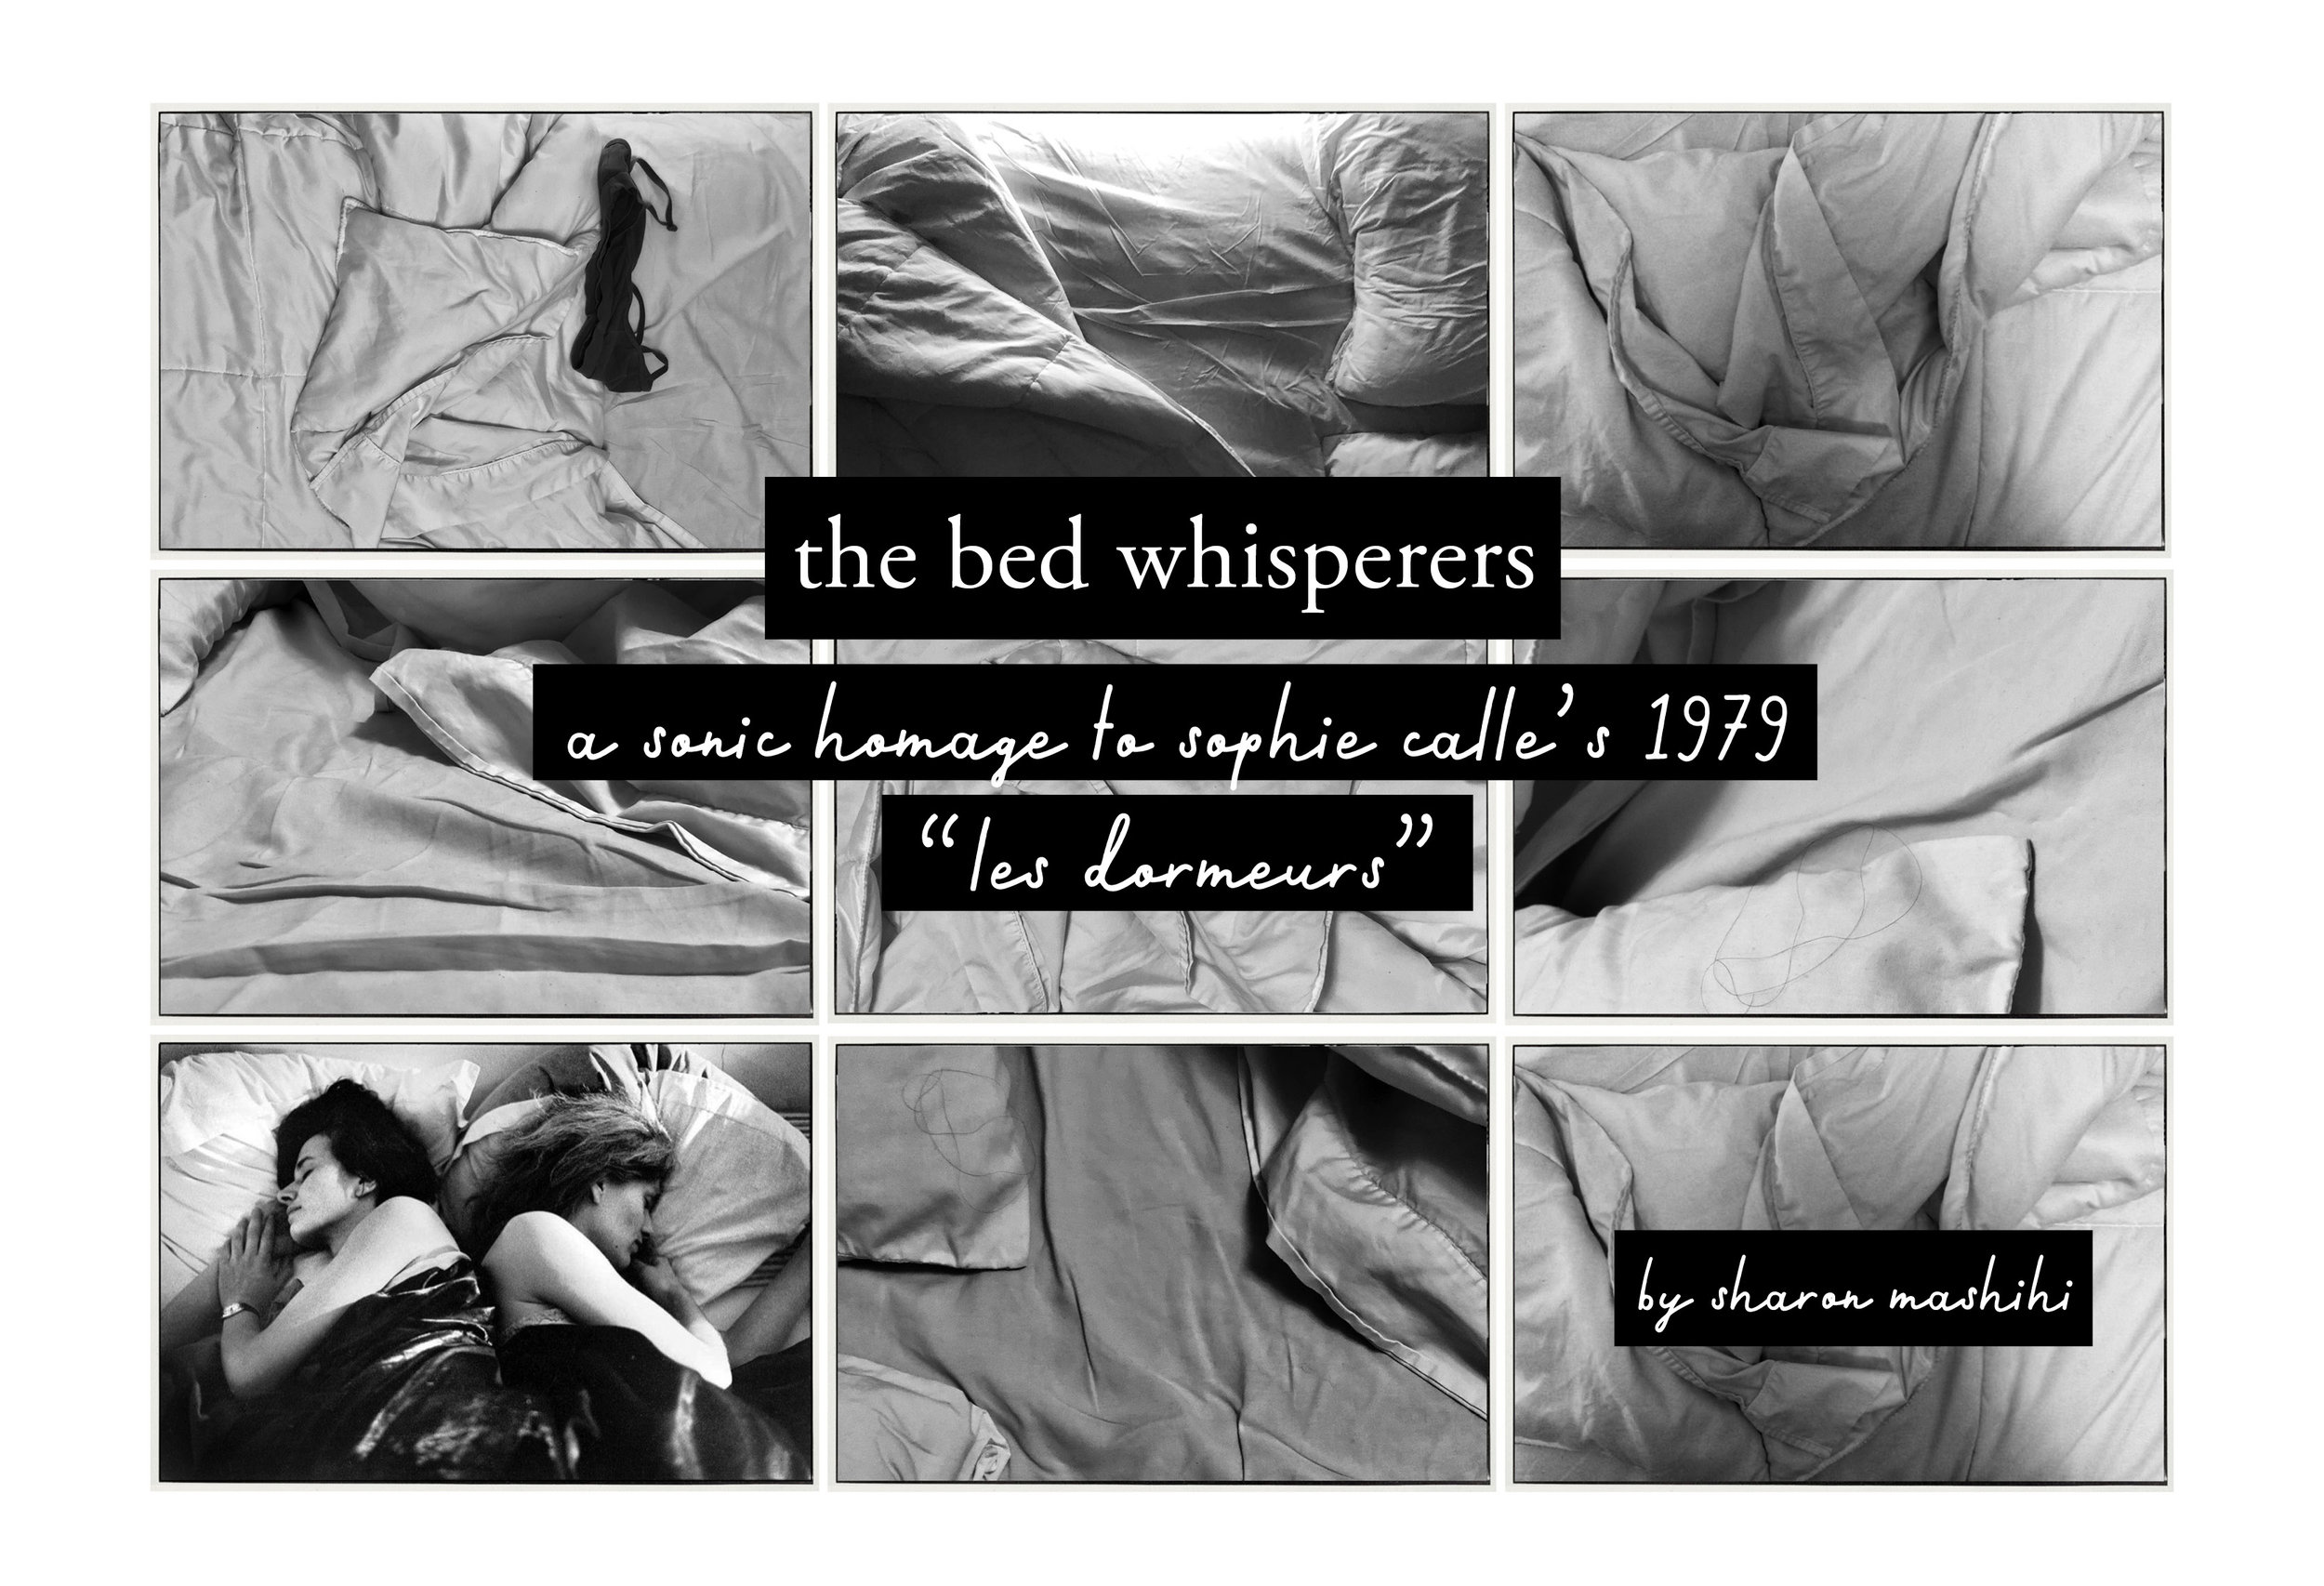 the bed whisperers, sharon mashihi, monique laborde, jen ng, wythe hotel, on air fest, sophie calle, les dormeurs